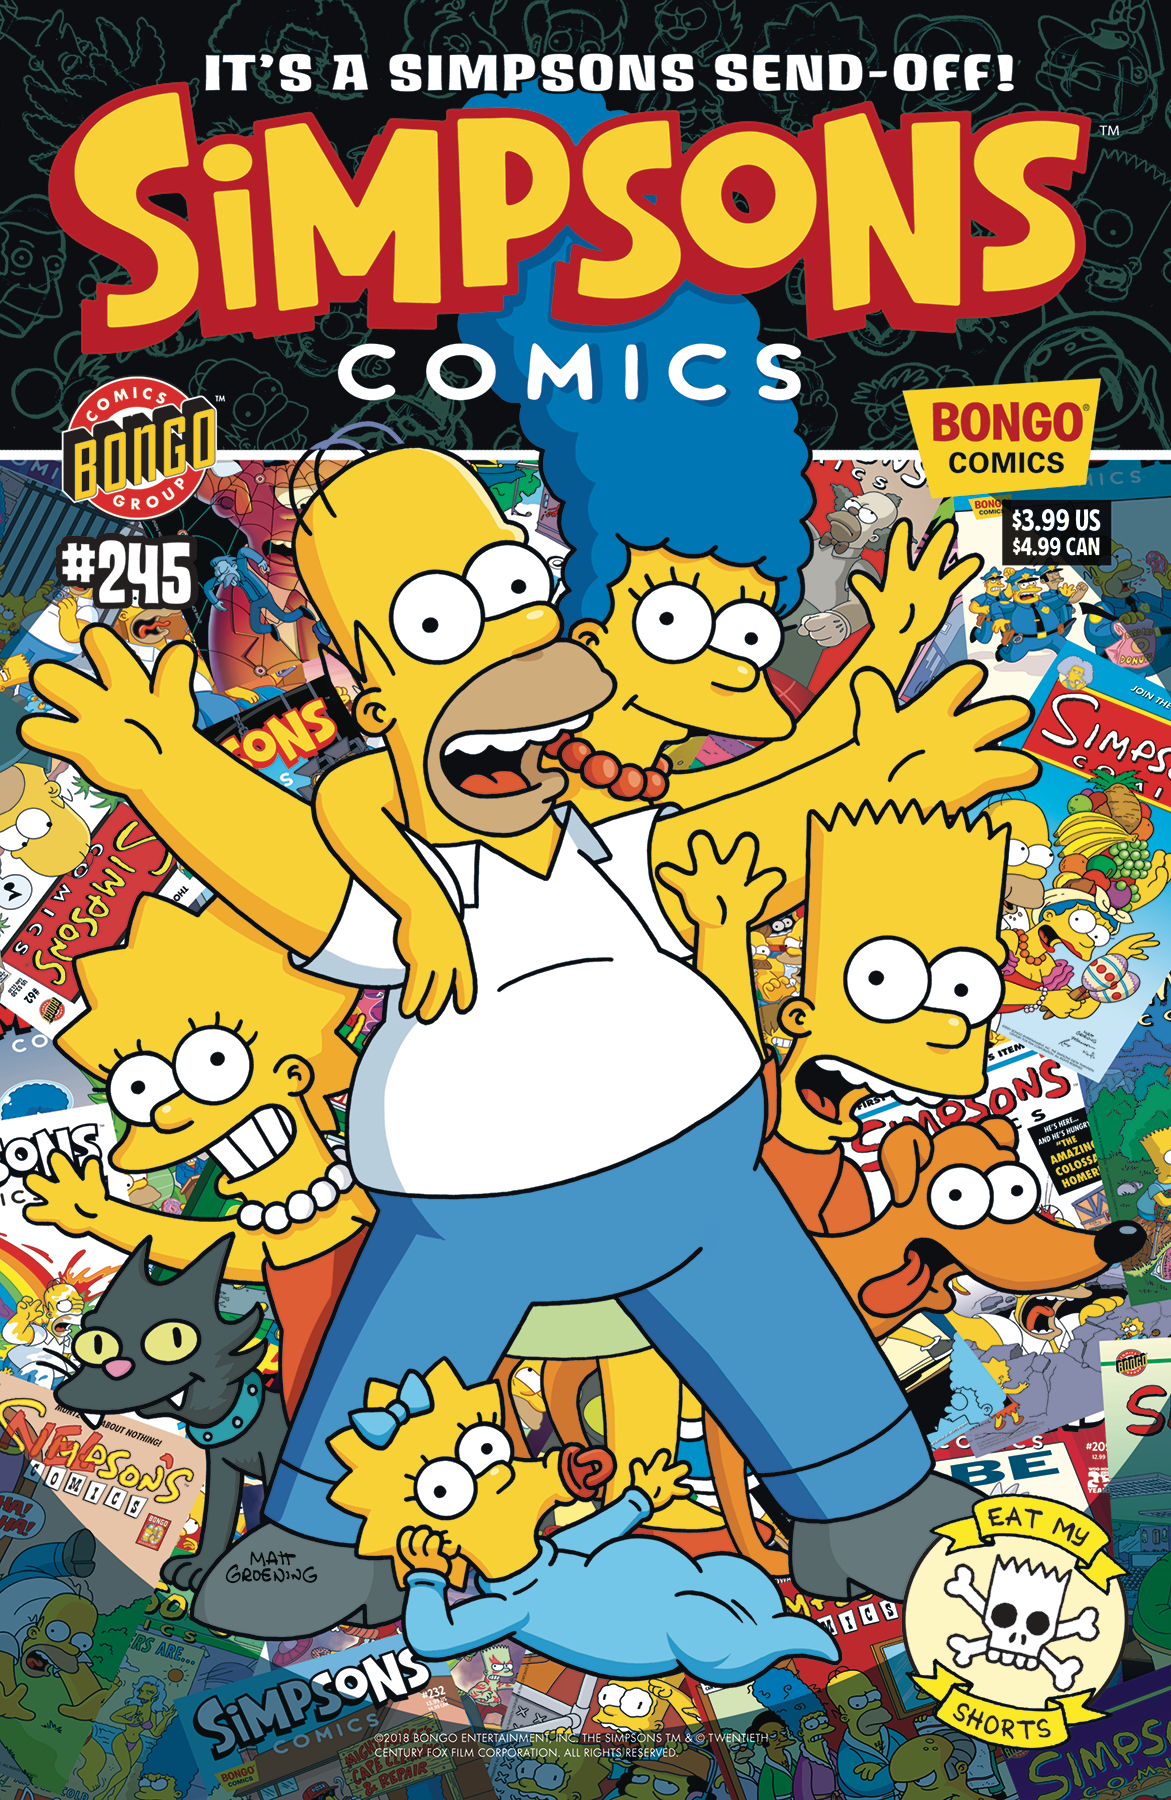 Simpsons comic galleries 23